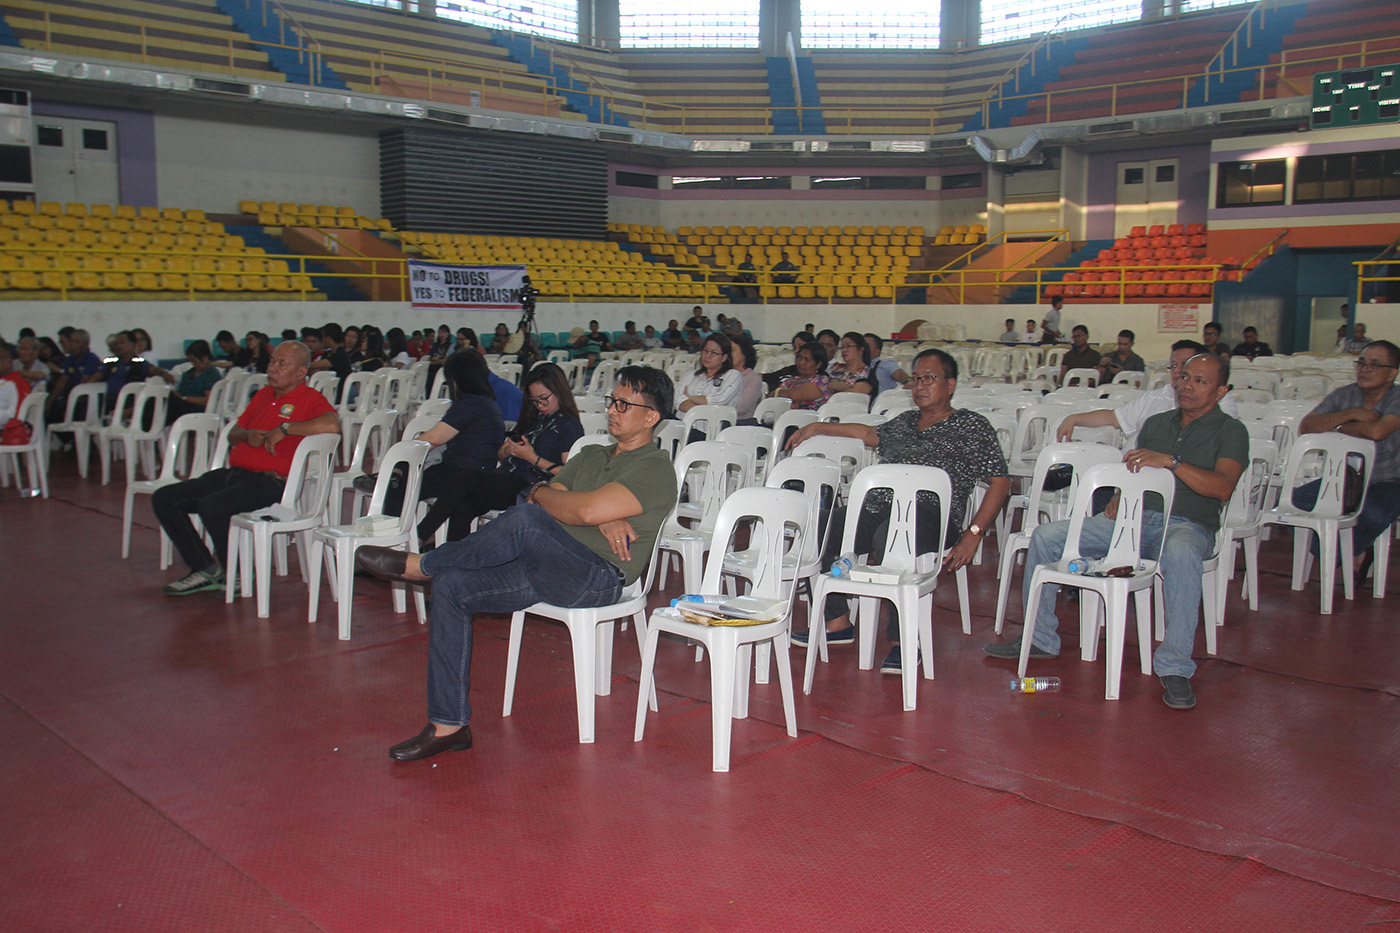 SPARSE CROWD. The crowd was thinner at te second federalism roadshow in Legazpi on December 7, 2018, compared to the first one held in July. Photo by Rhaydz Barcia/Rappler